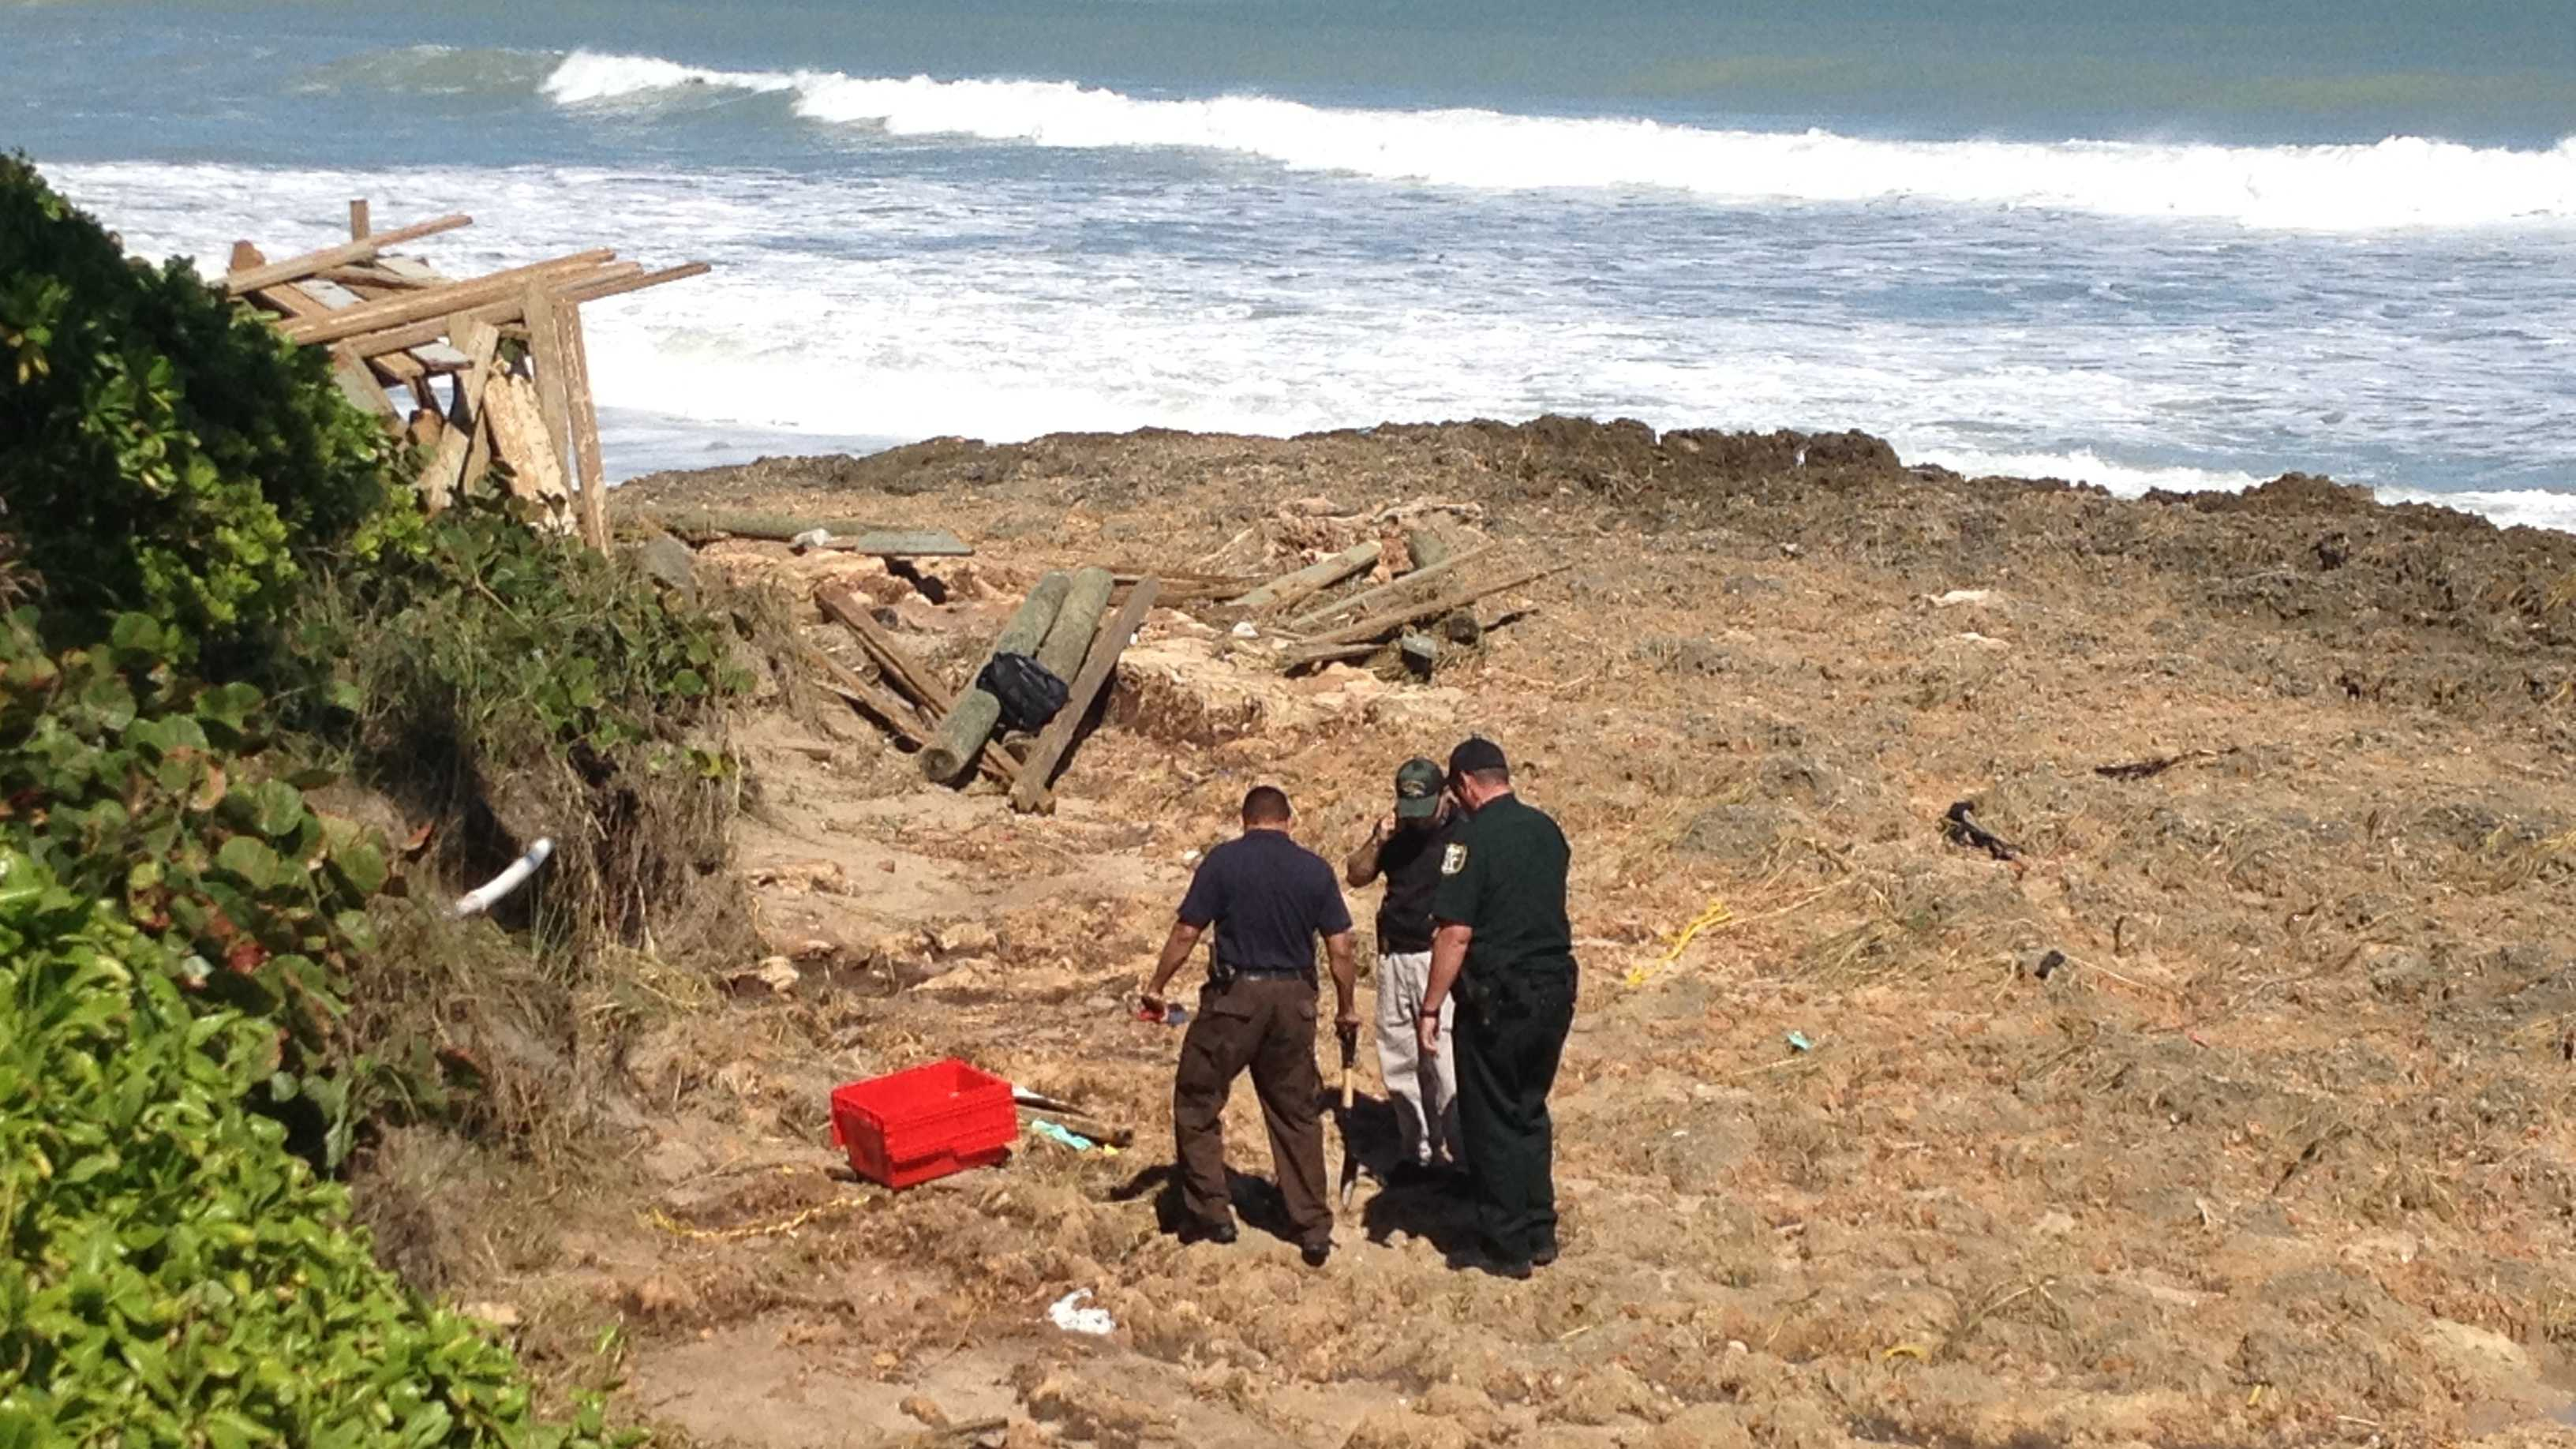 Deputies are investigating after a human skull and other bones were found on this rocky beach in Stuart.